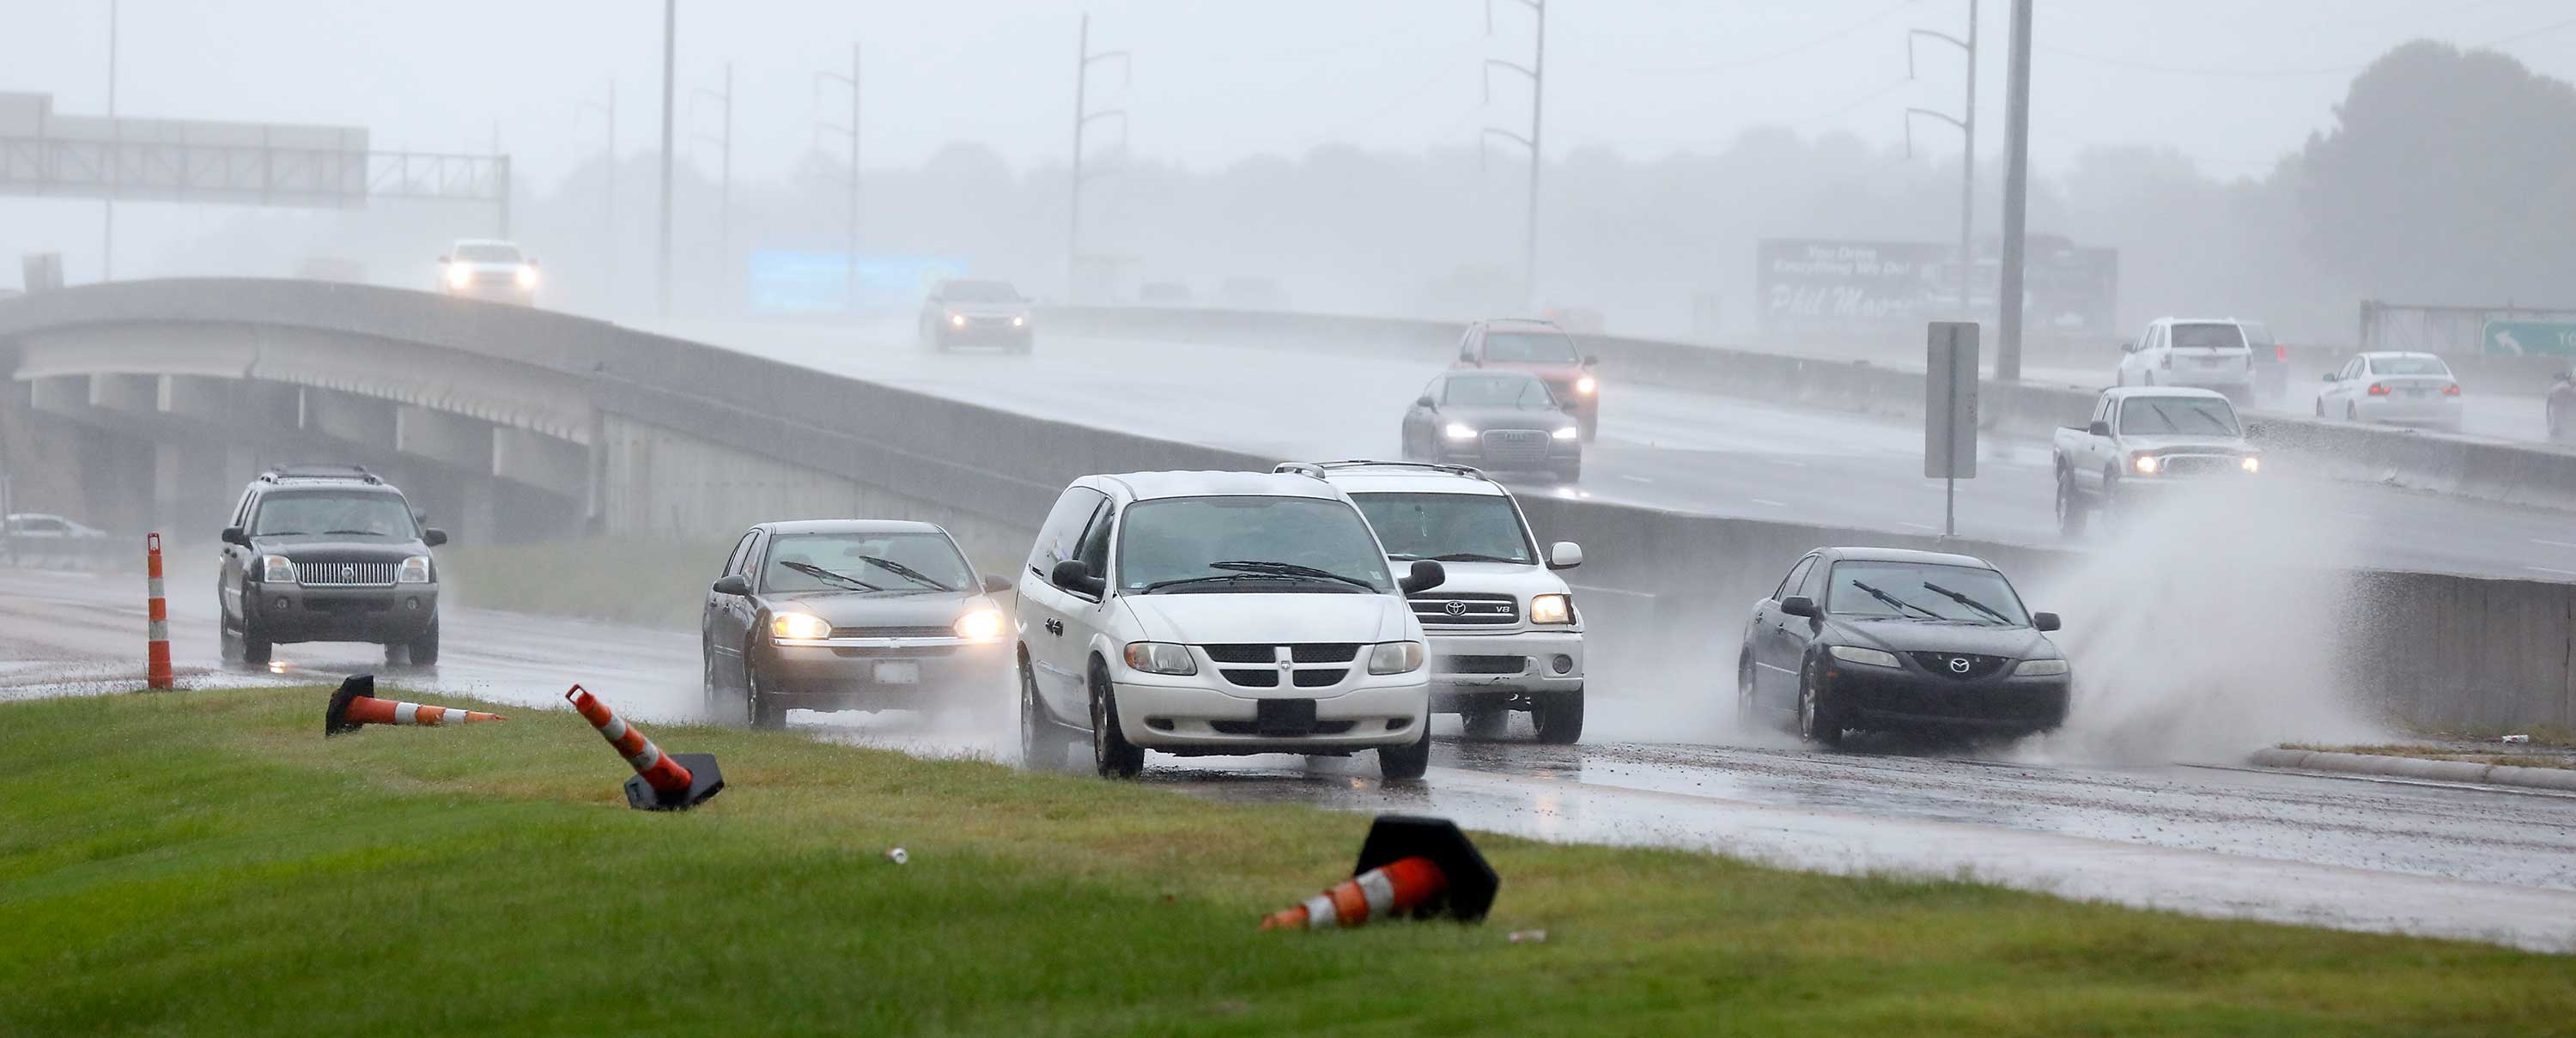 <div class='meta'><div class='origin-logo' data-origin='none'></div><span class='caption-text' data-credit='Rogelio V. Solis/AP Photo'>Accumulated rain from what is now Tropical Depression Gordon, makes for a big splash across a frontage road along I-55 in Jackson, Miss., Wednesday, Sept. 5, 2018.</span></div>